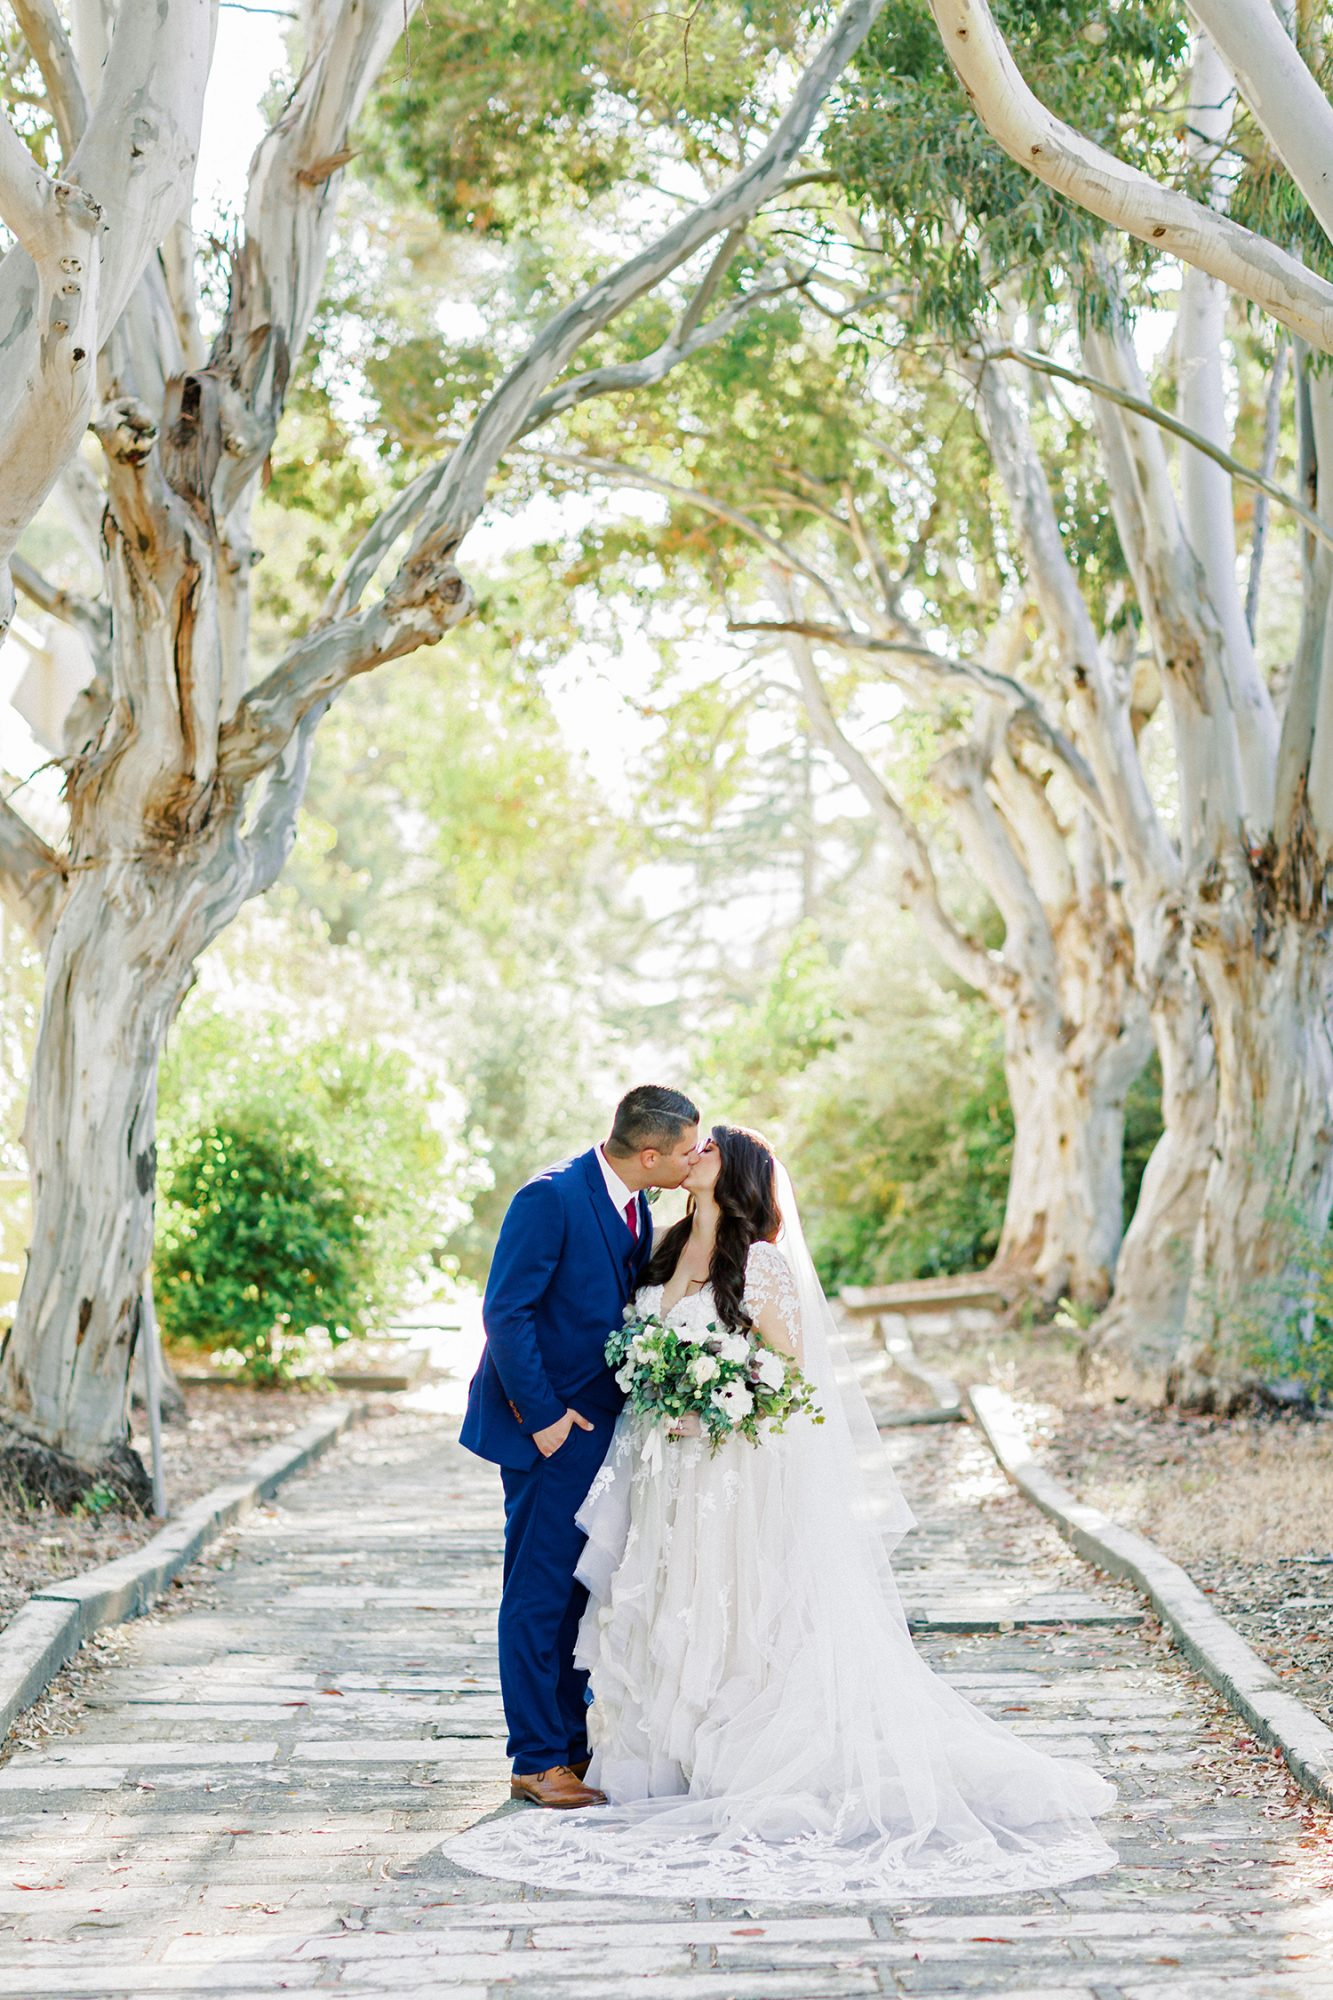 erika evan wedding couple kiss in line of trees